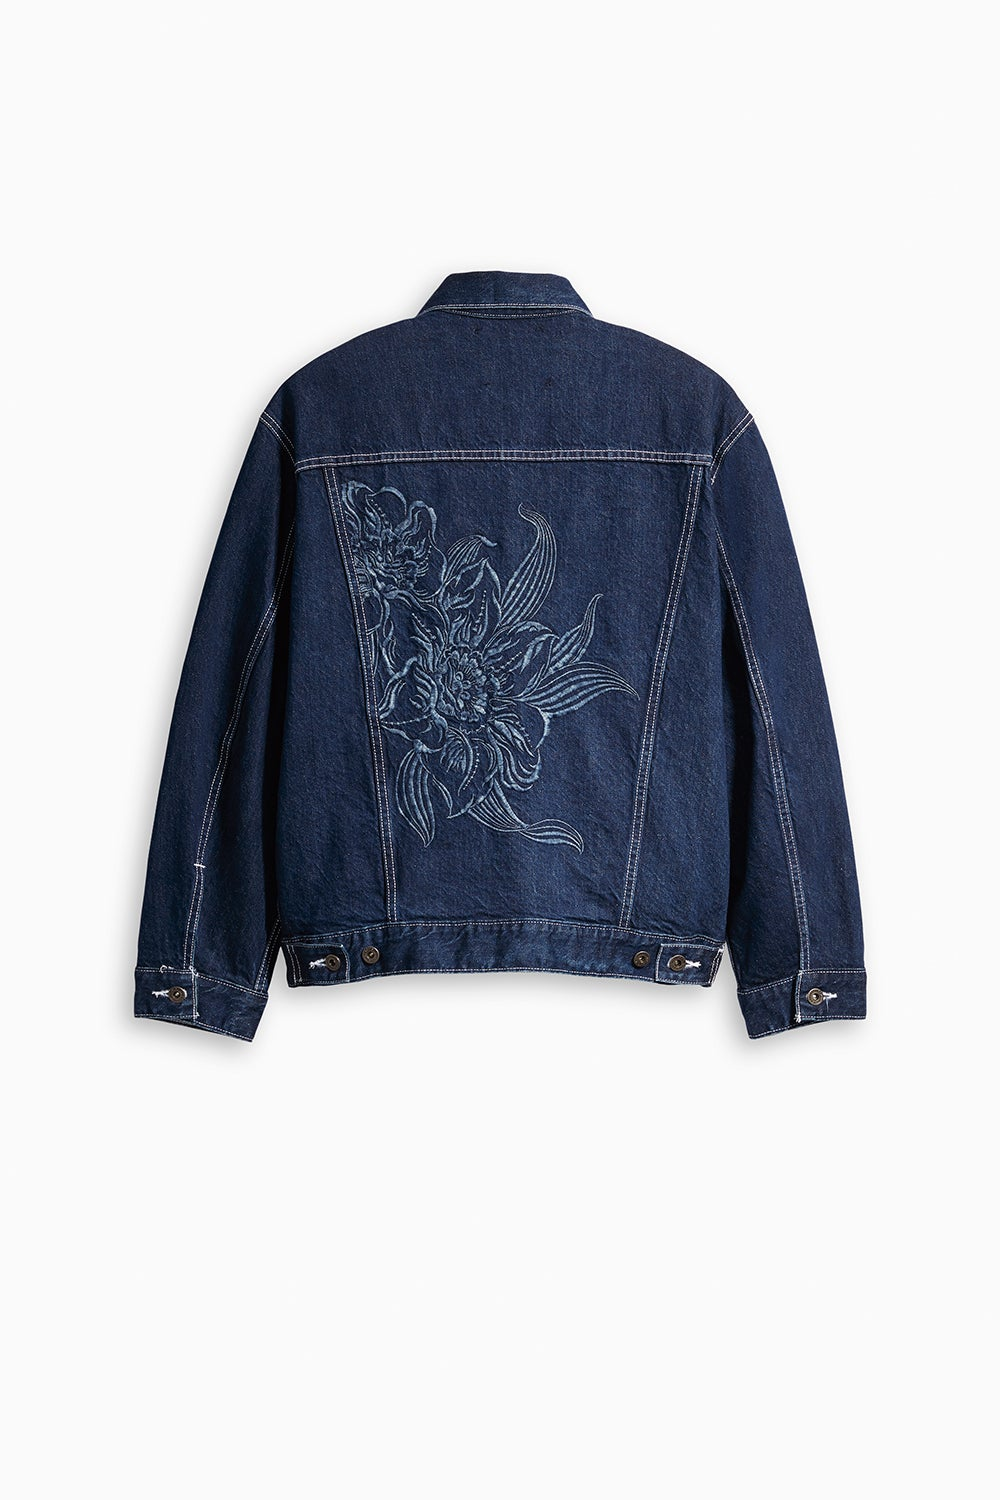 Levi's Made and Crafted Oversized Type III Trucker Majorelle Blue